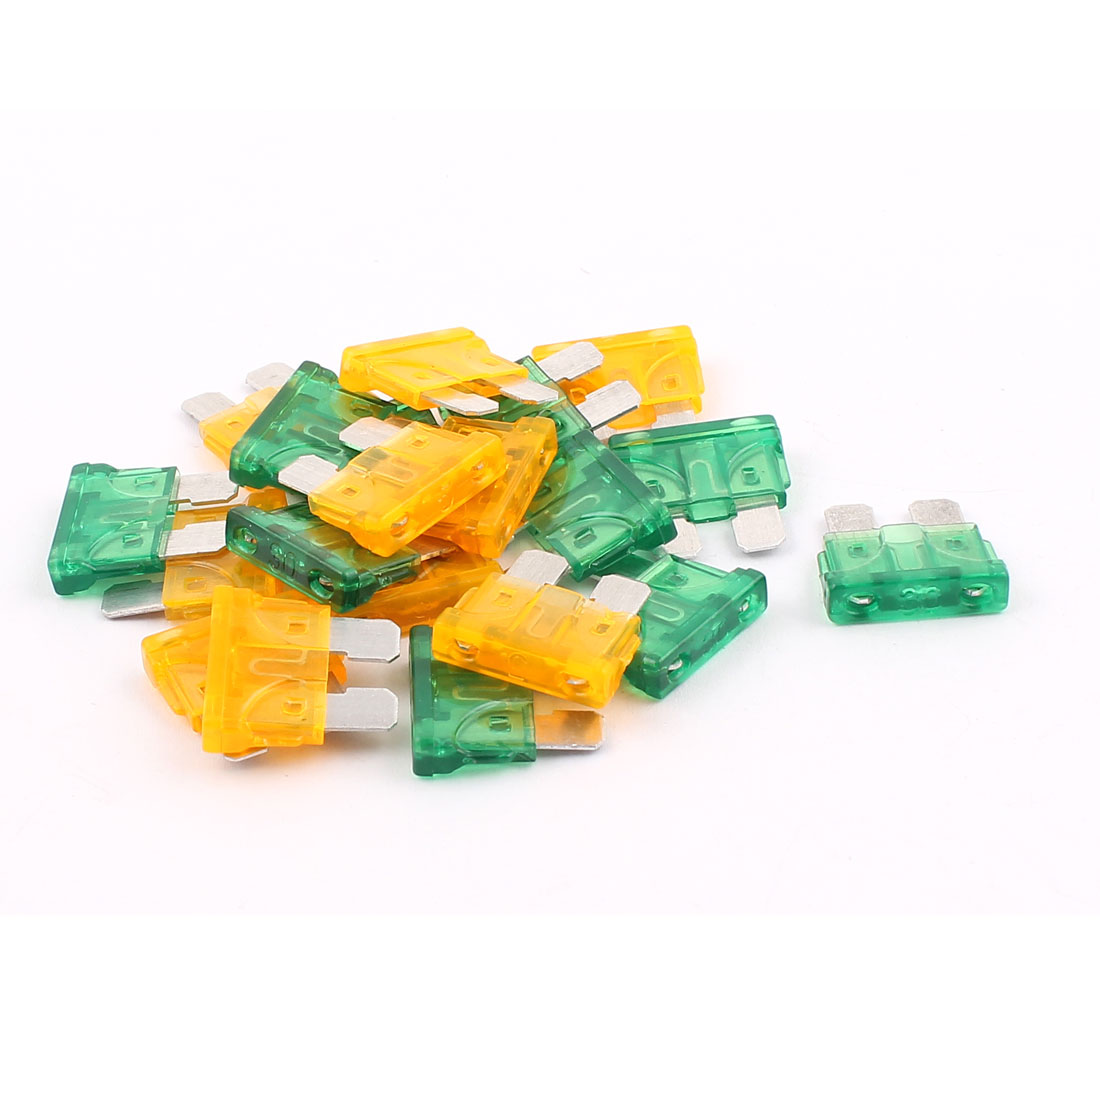 20pcs Automotive Car Vehicle Caravan SUV Boat ATC ATO Mini Blade Fuses 30A 5A Orange Green